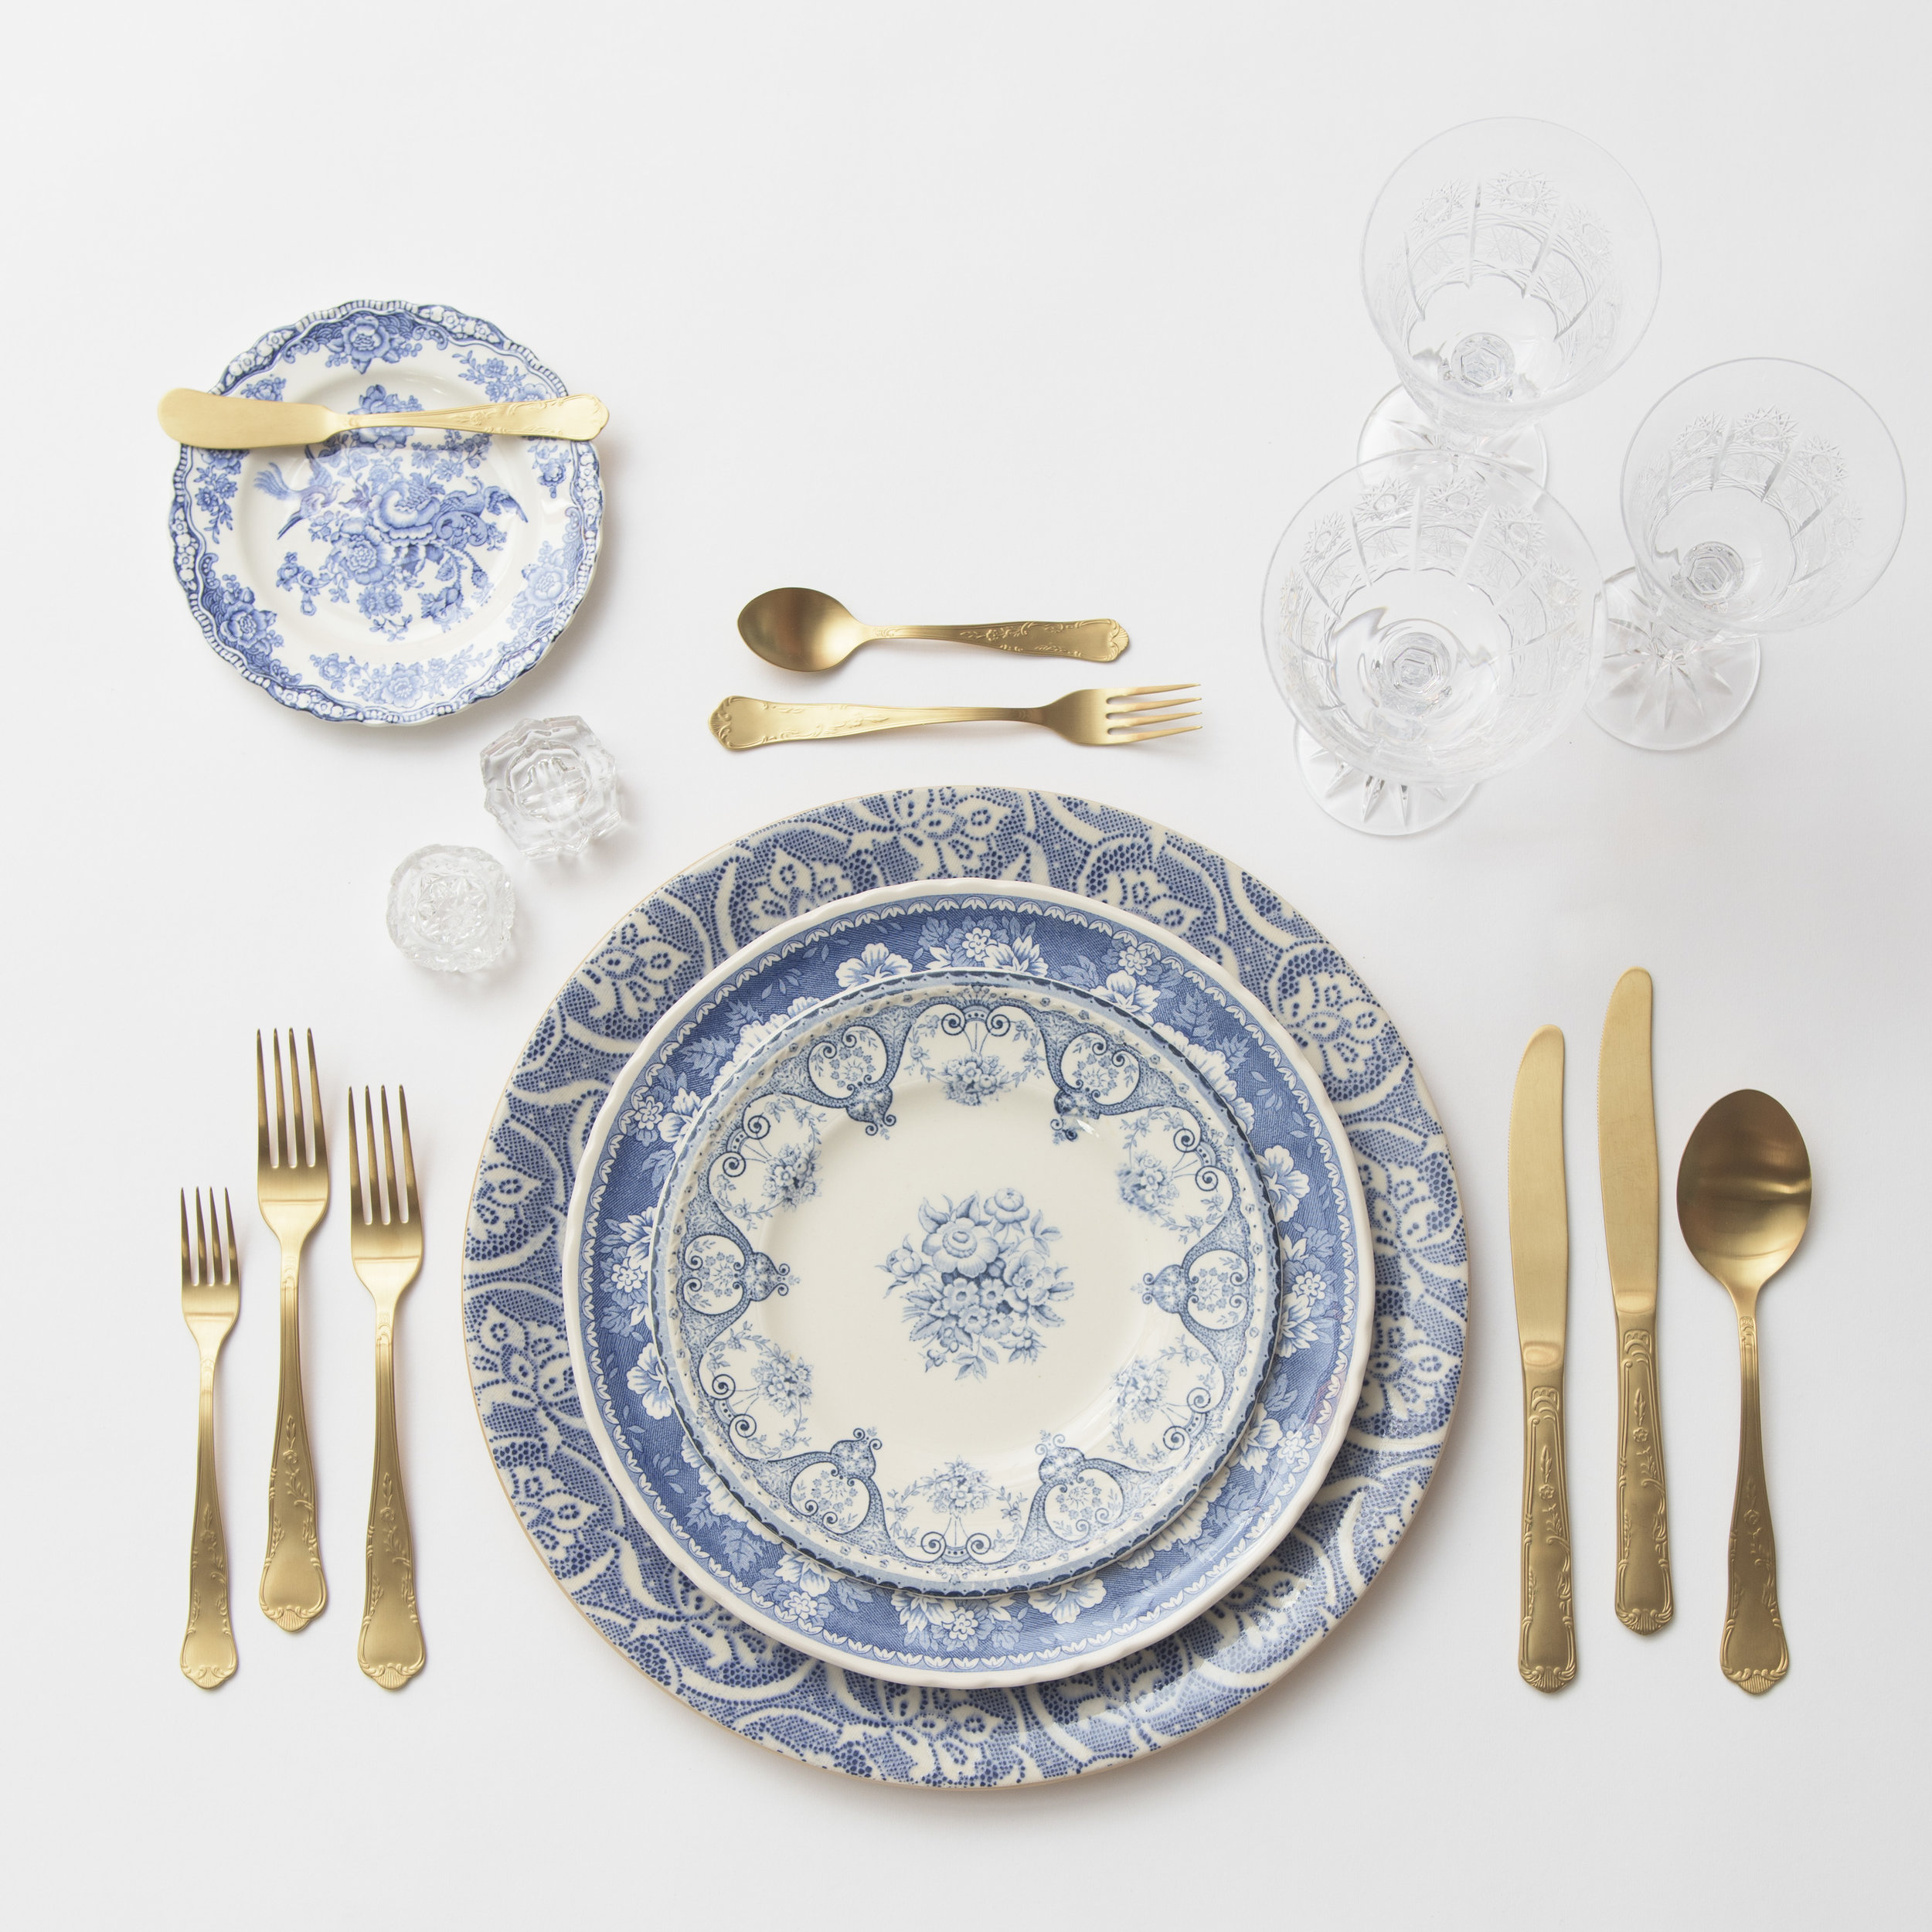 RENT: Blue Fleur de Lis Chargers + Blue Garden Collection Vintage China + Chateau Flatware in Matte Gold + Czech Crystal Stemware + Antique Crystal Salt Cellars